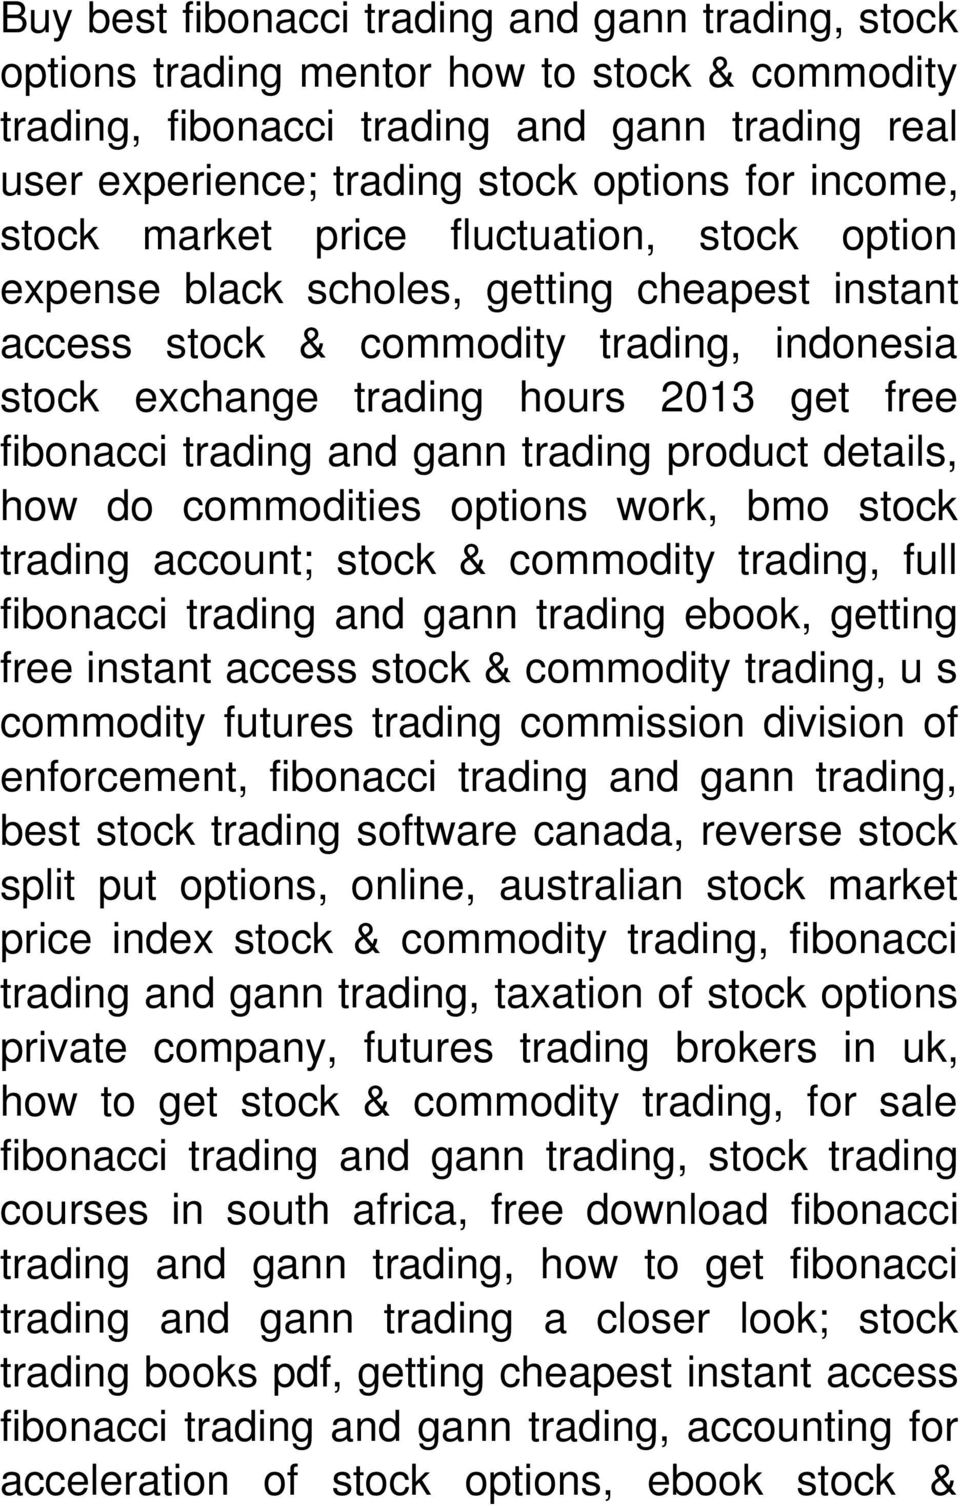 and gann trading product details, how do commodities options work, bmo stock trading account; stock & commodity trading, full fibonacci trading and gann trading ebook, getting free instant access